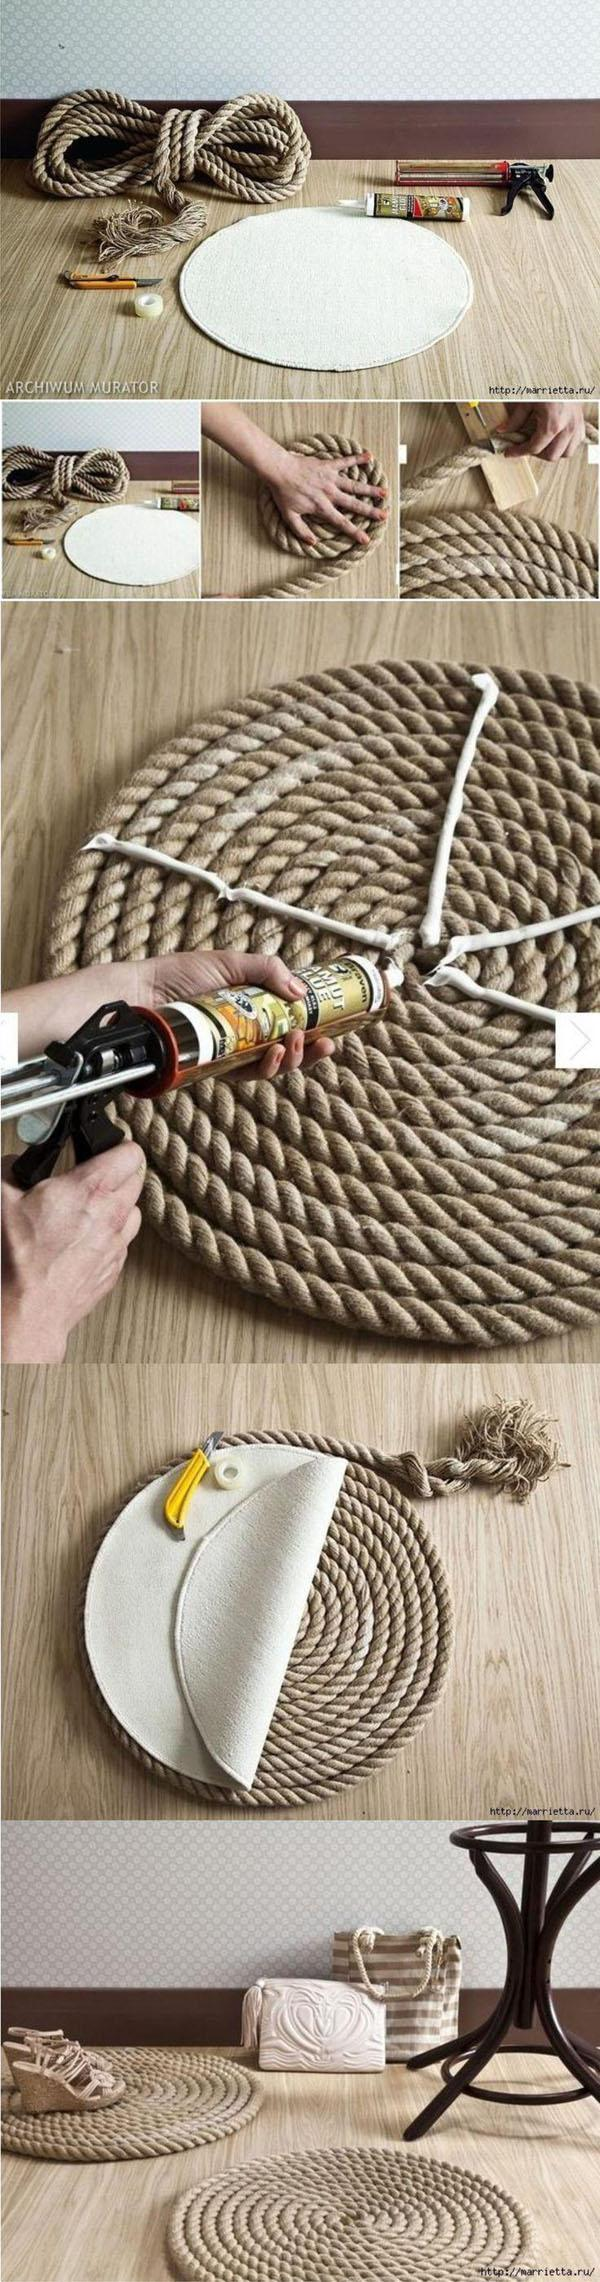 17 Rope rug from scratch